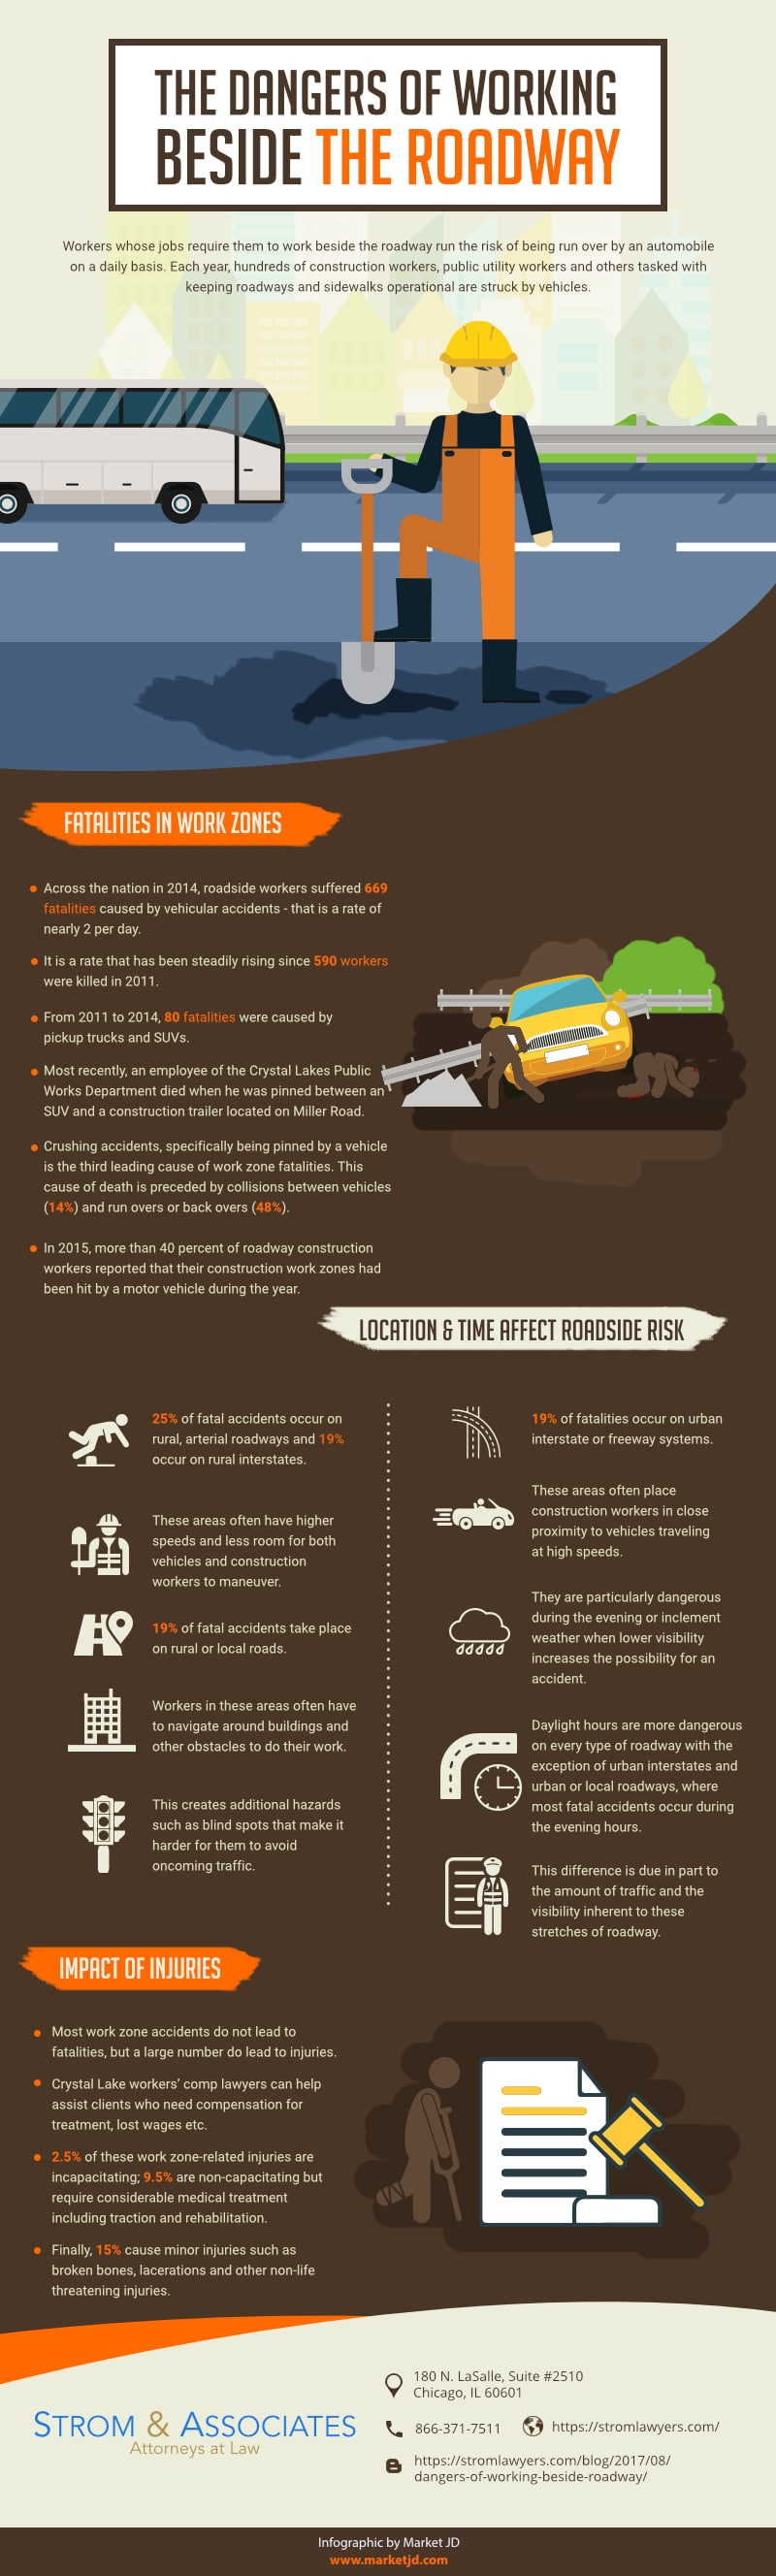 Danger of working beside roadway infographic